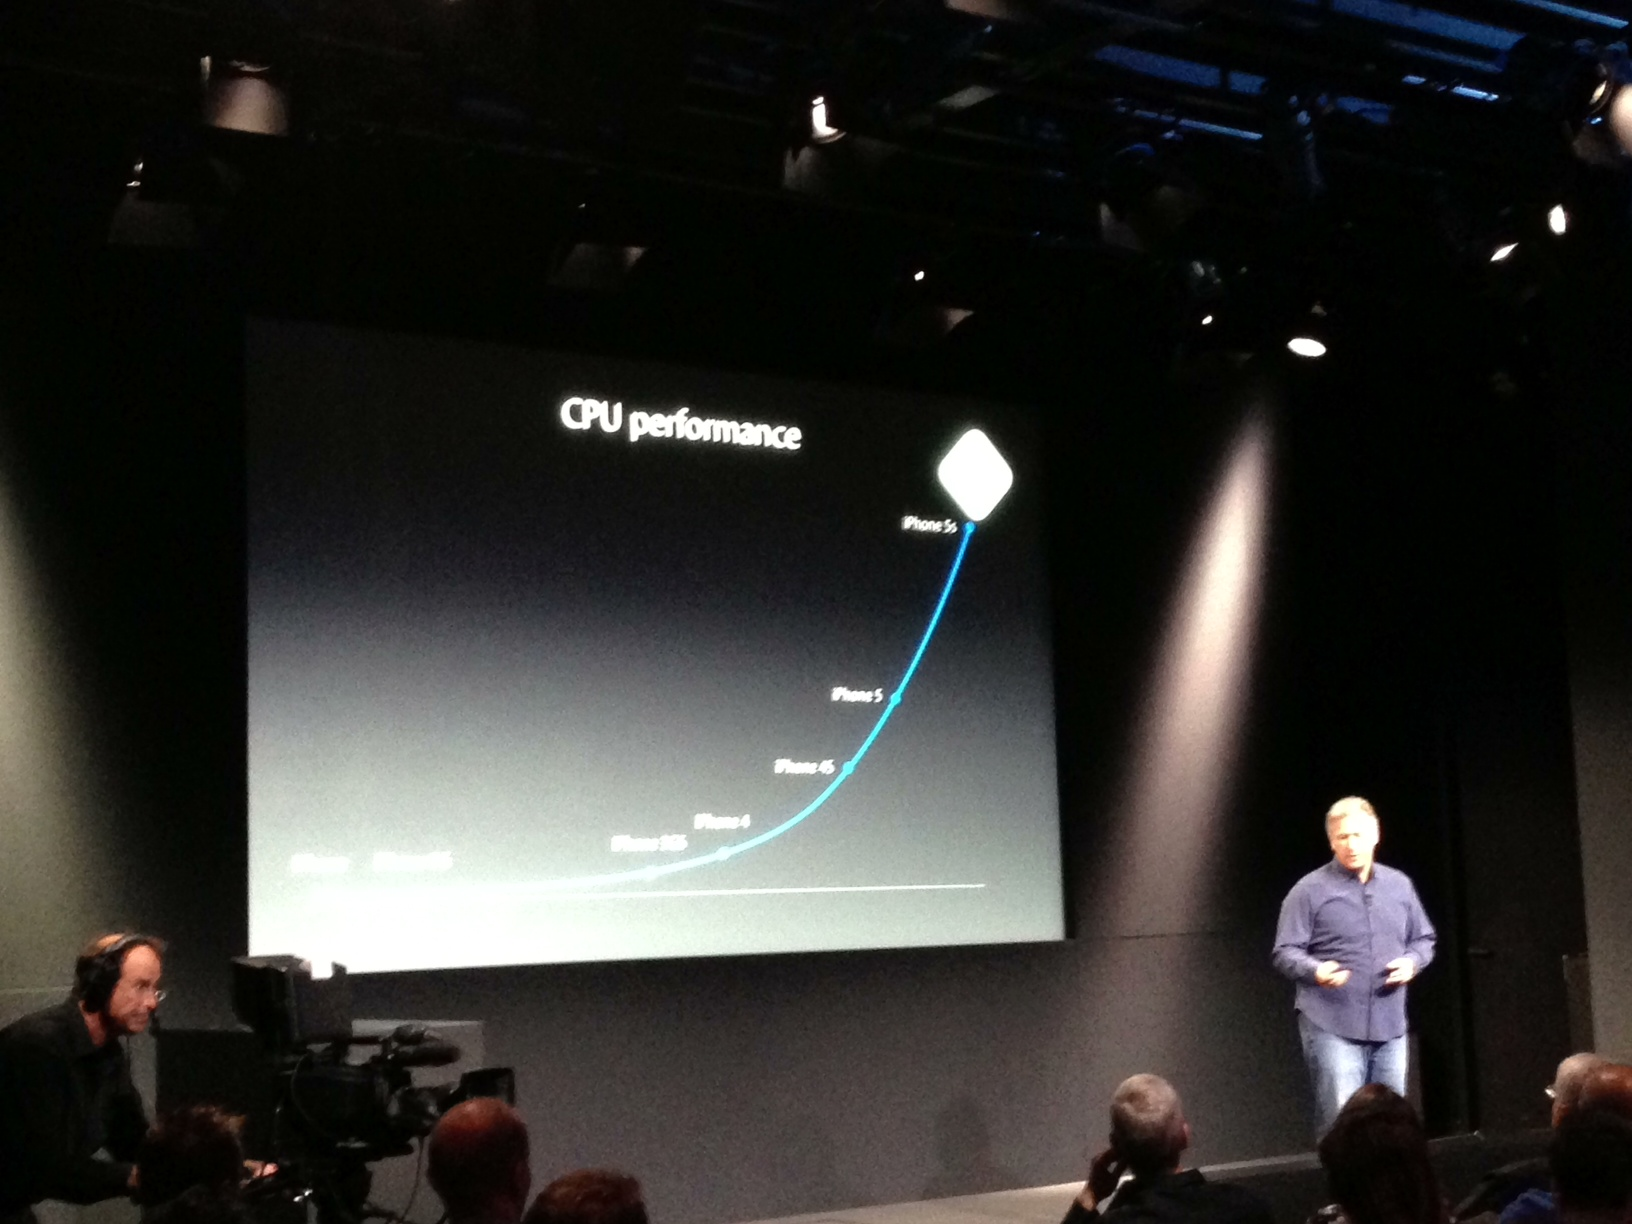 iPhone 5 event Phil Schiller CPU Performance